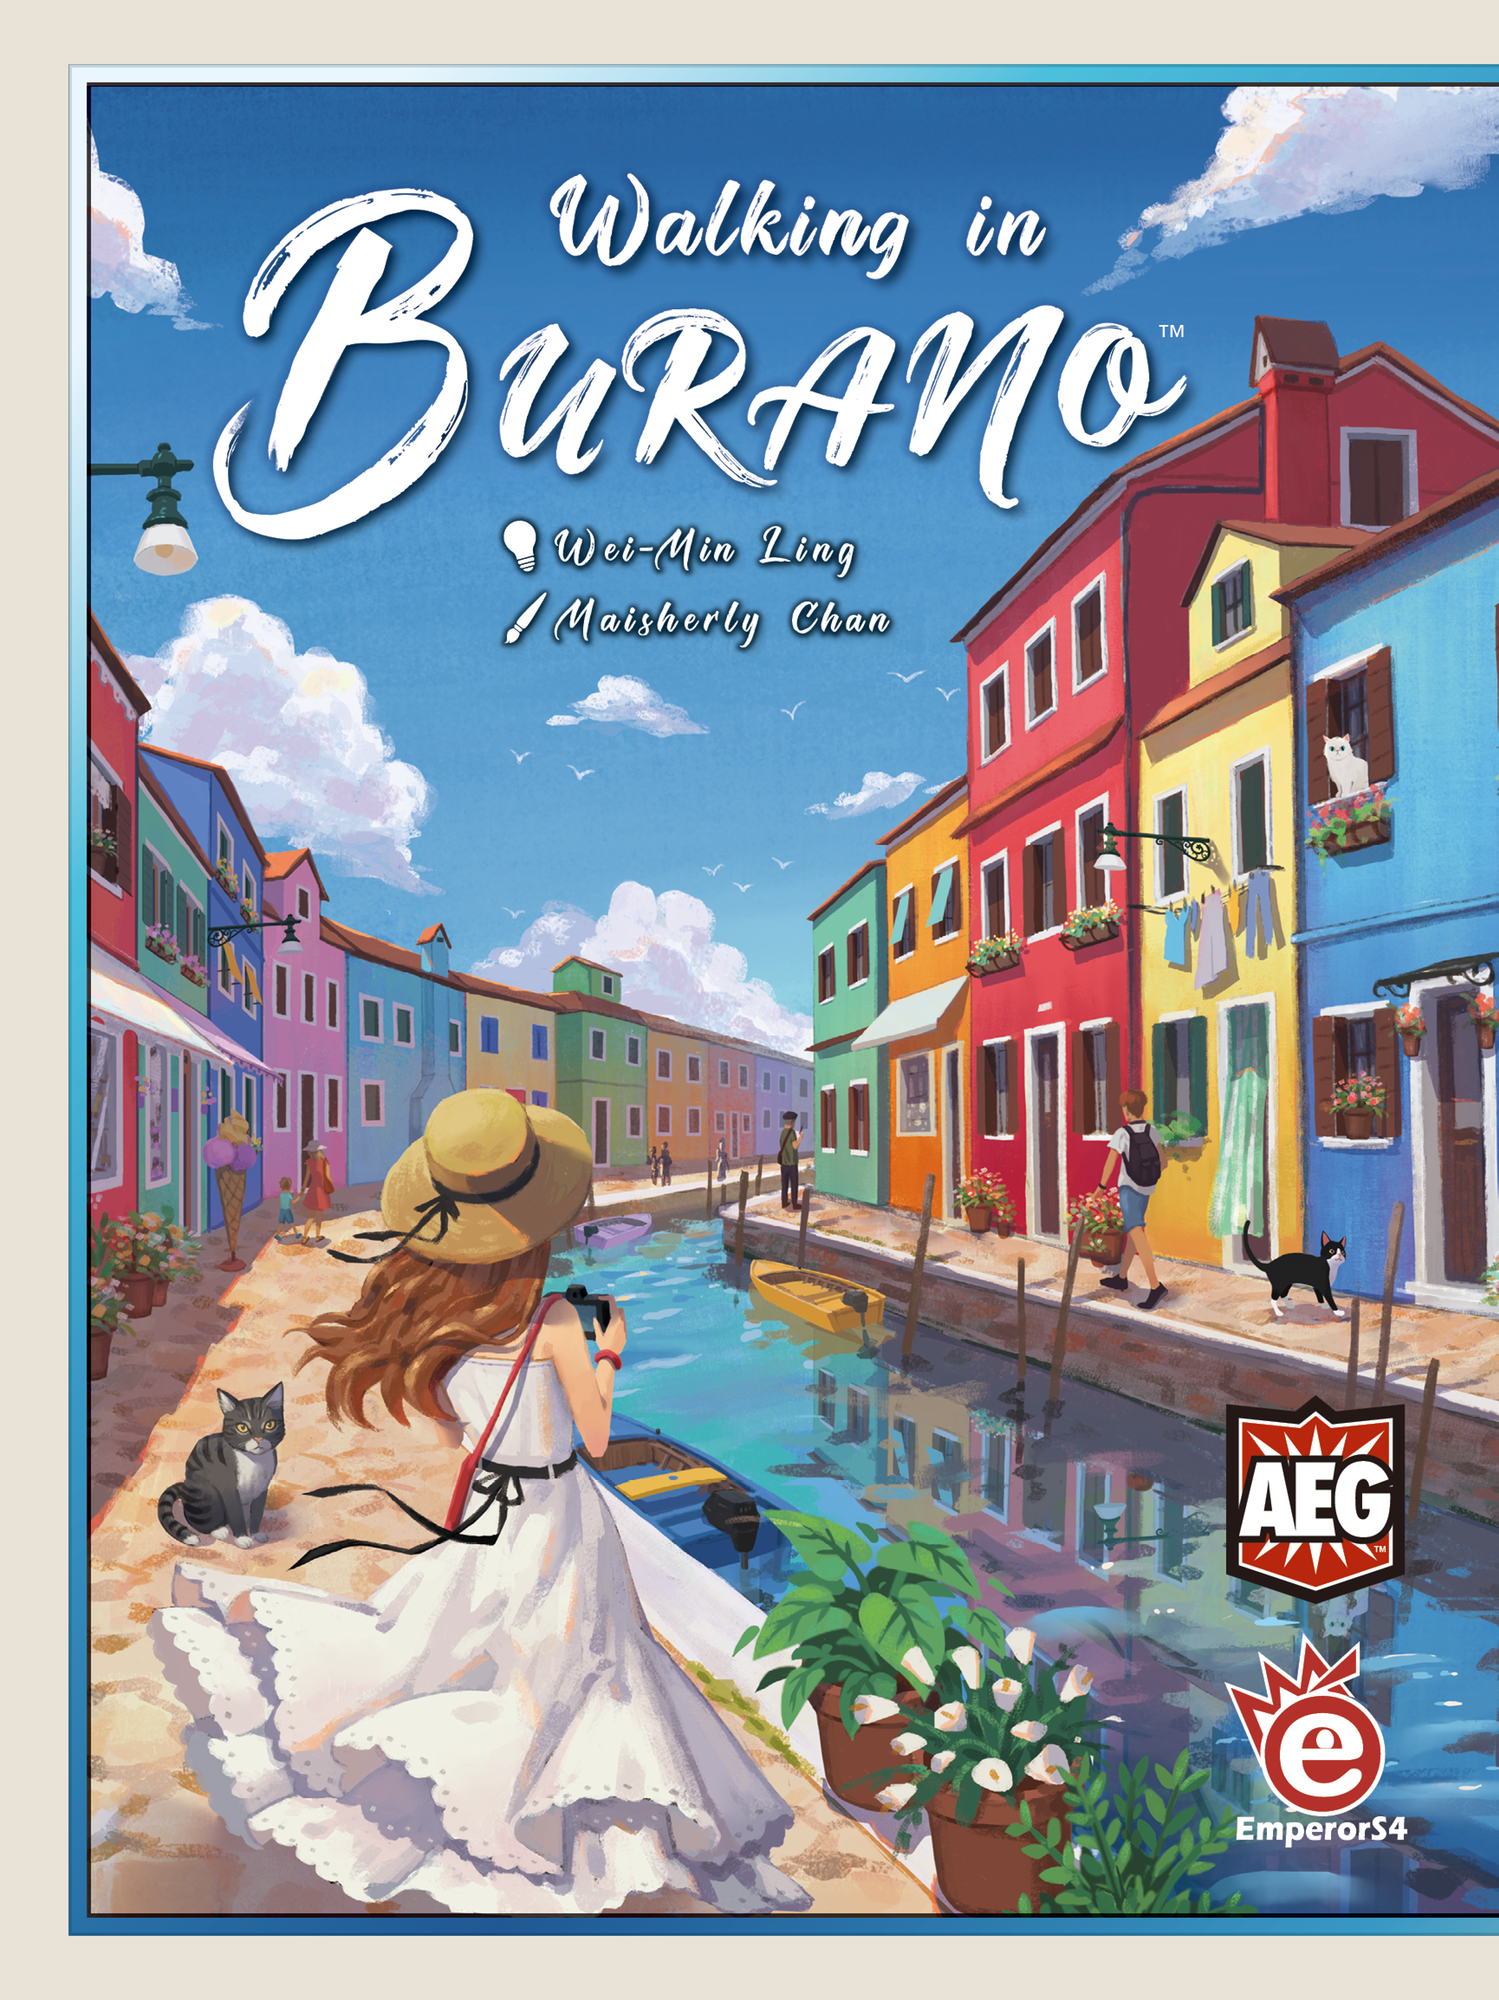 uploaded to BGG by BGG user W Eric Martin